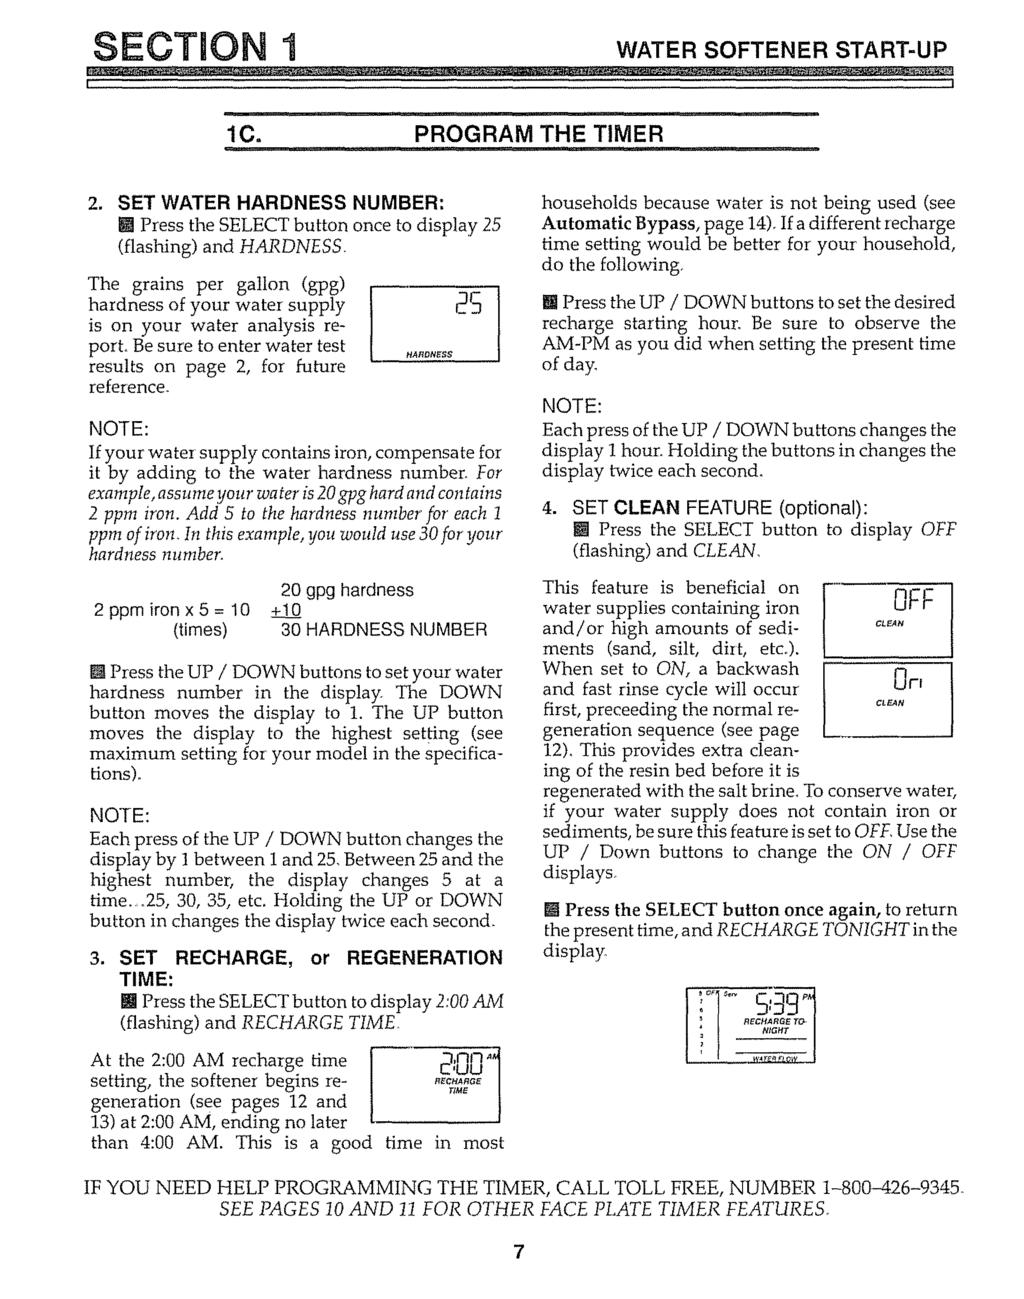 Owners Manual Demand Water Softeners Model Nos Warranty Sears Ceiling Fan Wiring Diagram Roebuck Section I Softener Start Up Lc Program The Timer J